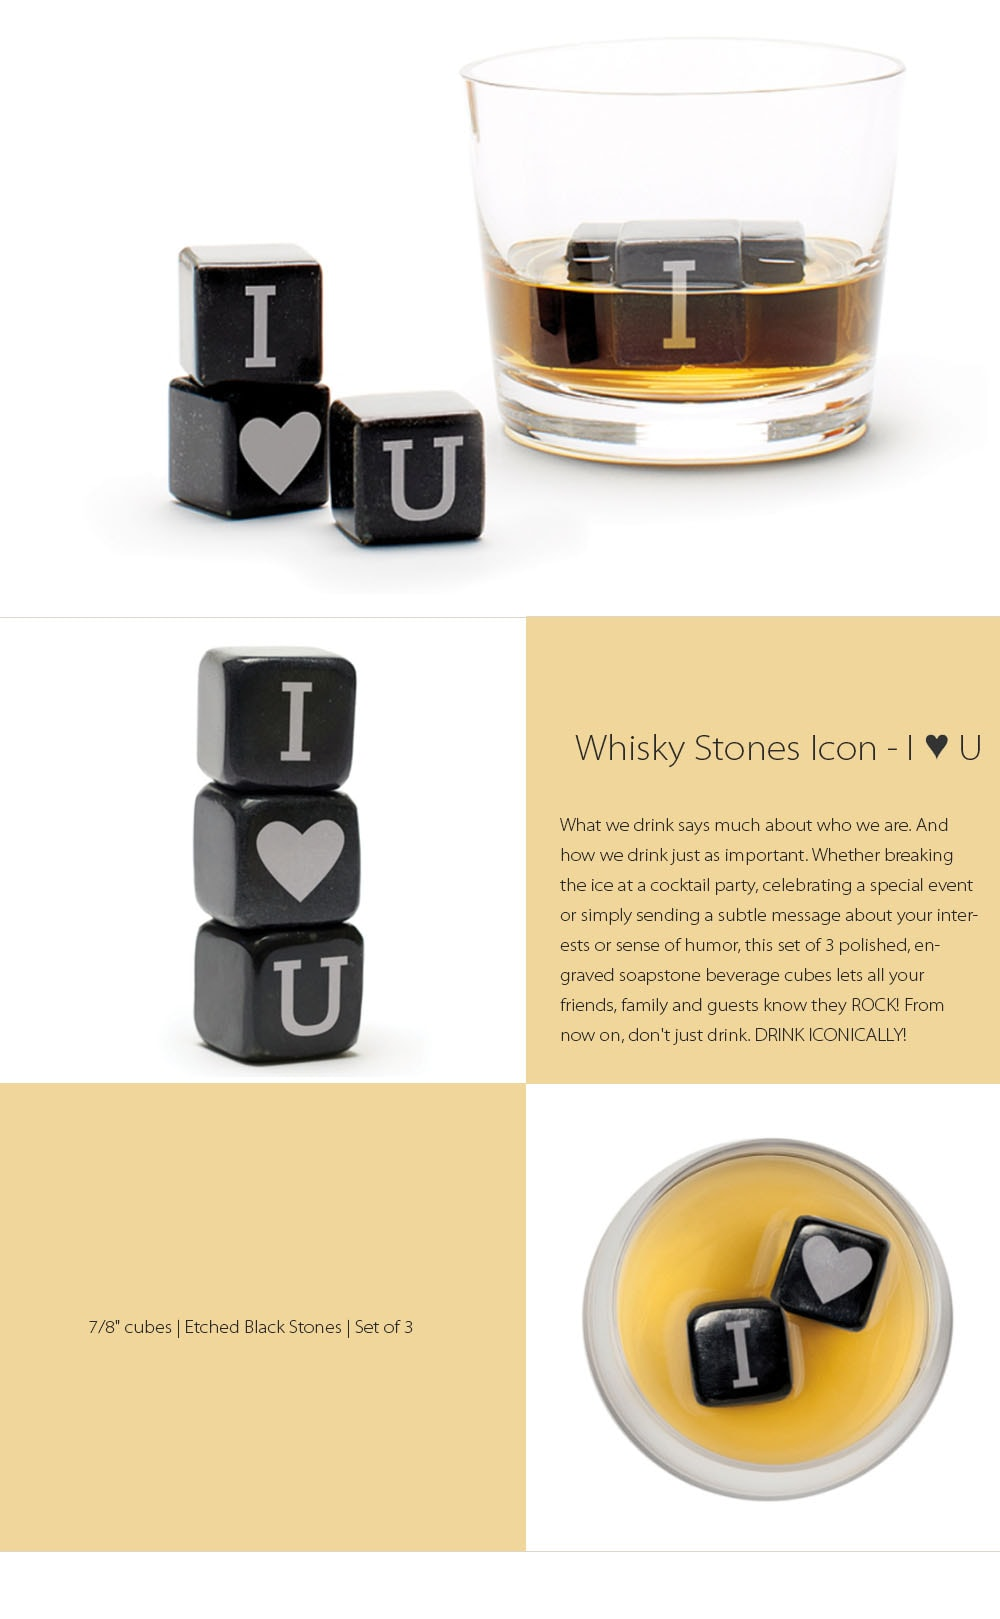 Whisky Stones Icon I Love You What We Drink Says Much About Who We Are